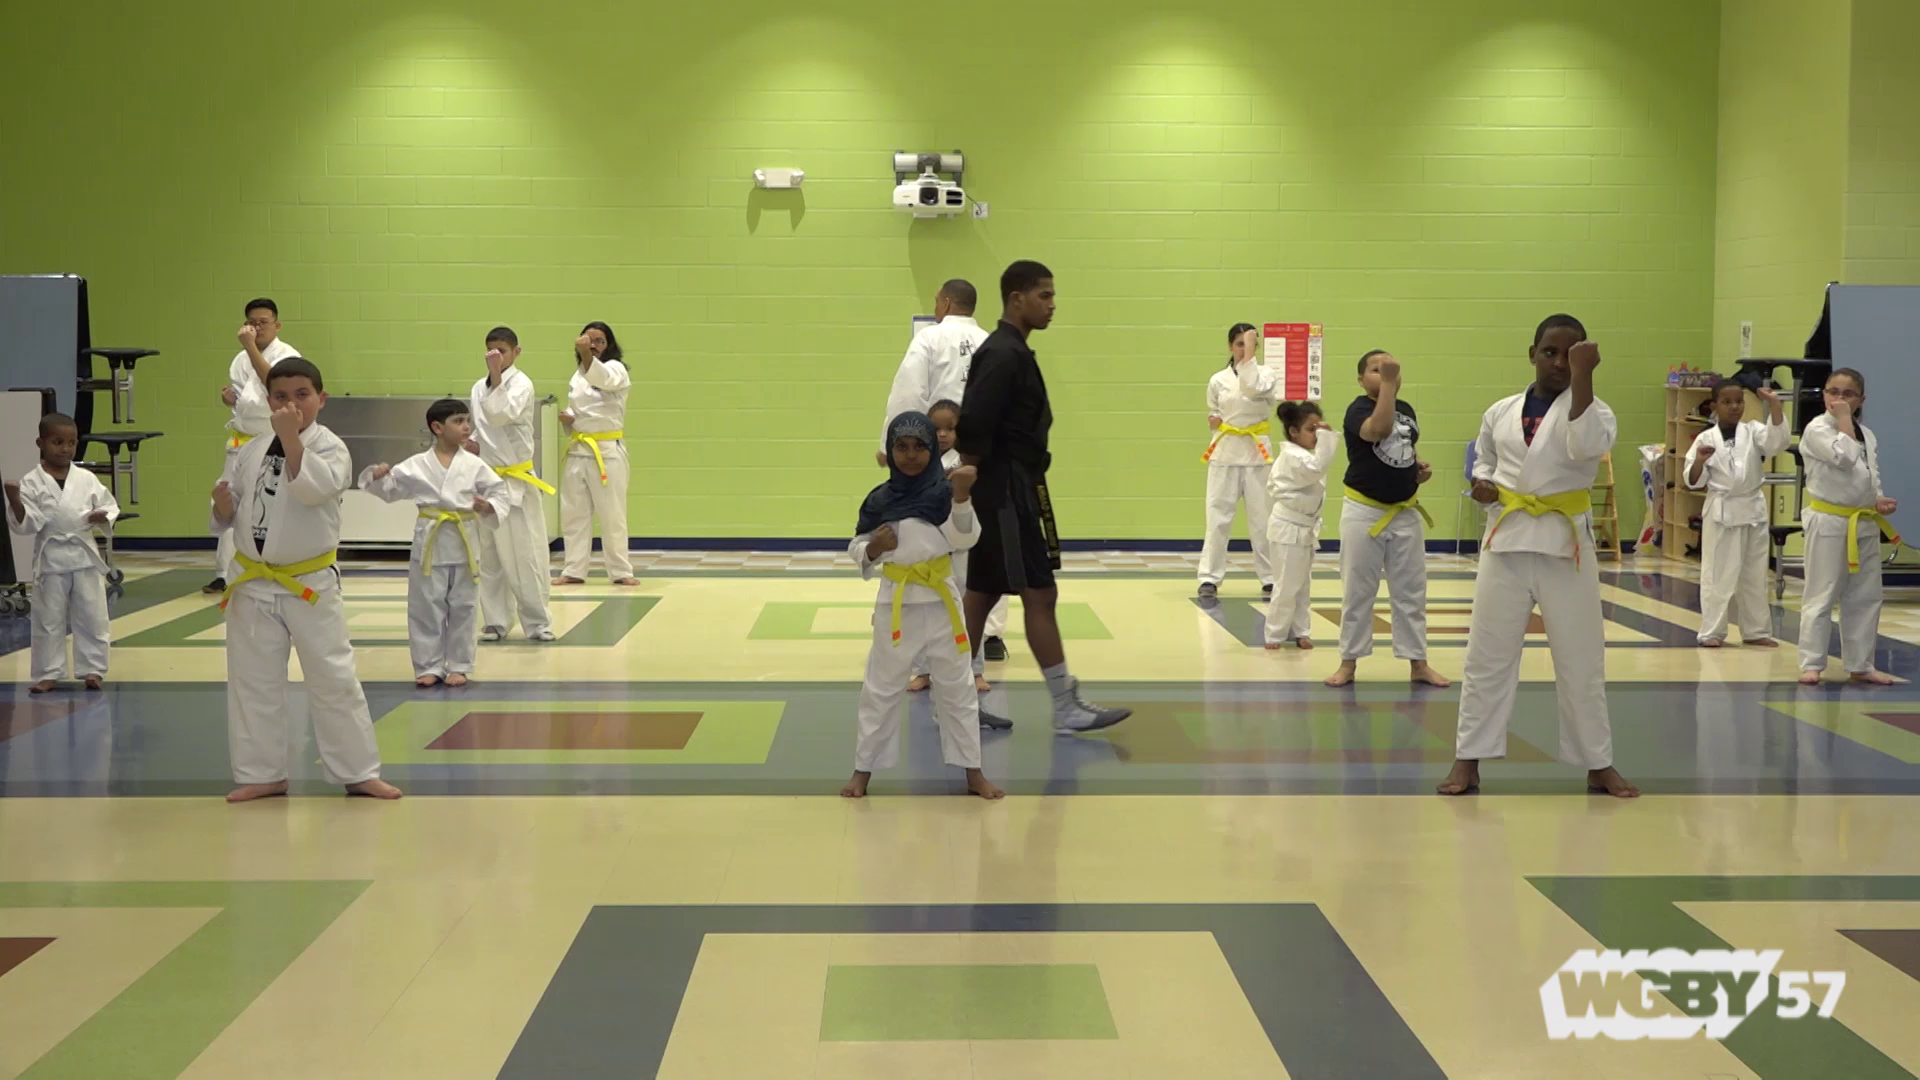 The School of the Noble Warrior is a martial arts program for kids founded in 2007 by Ahmad Sharif, a 20-year veteran of the Springfield Police Force. Concerned with the lack of positive role models for inner city kids, Sharif started the program in the basement of his Springfield, MA home.